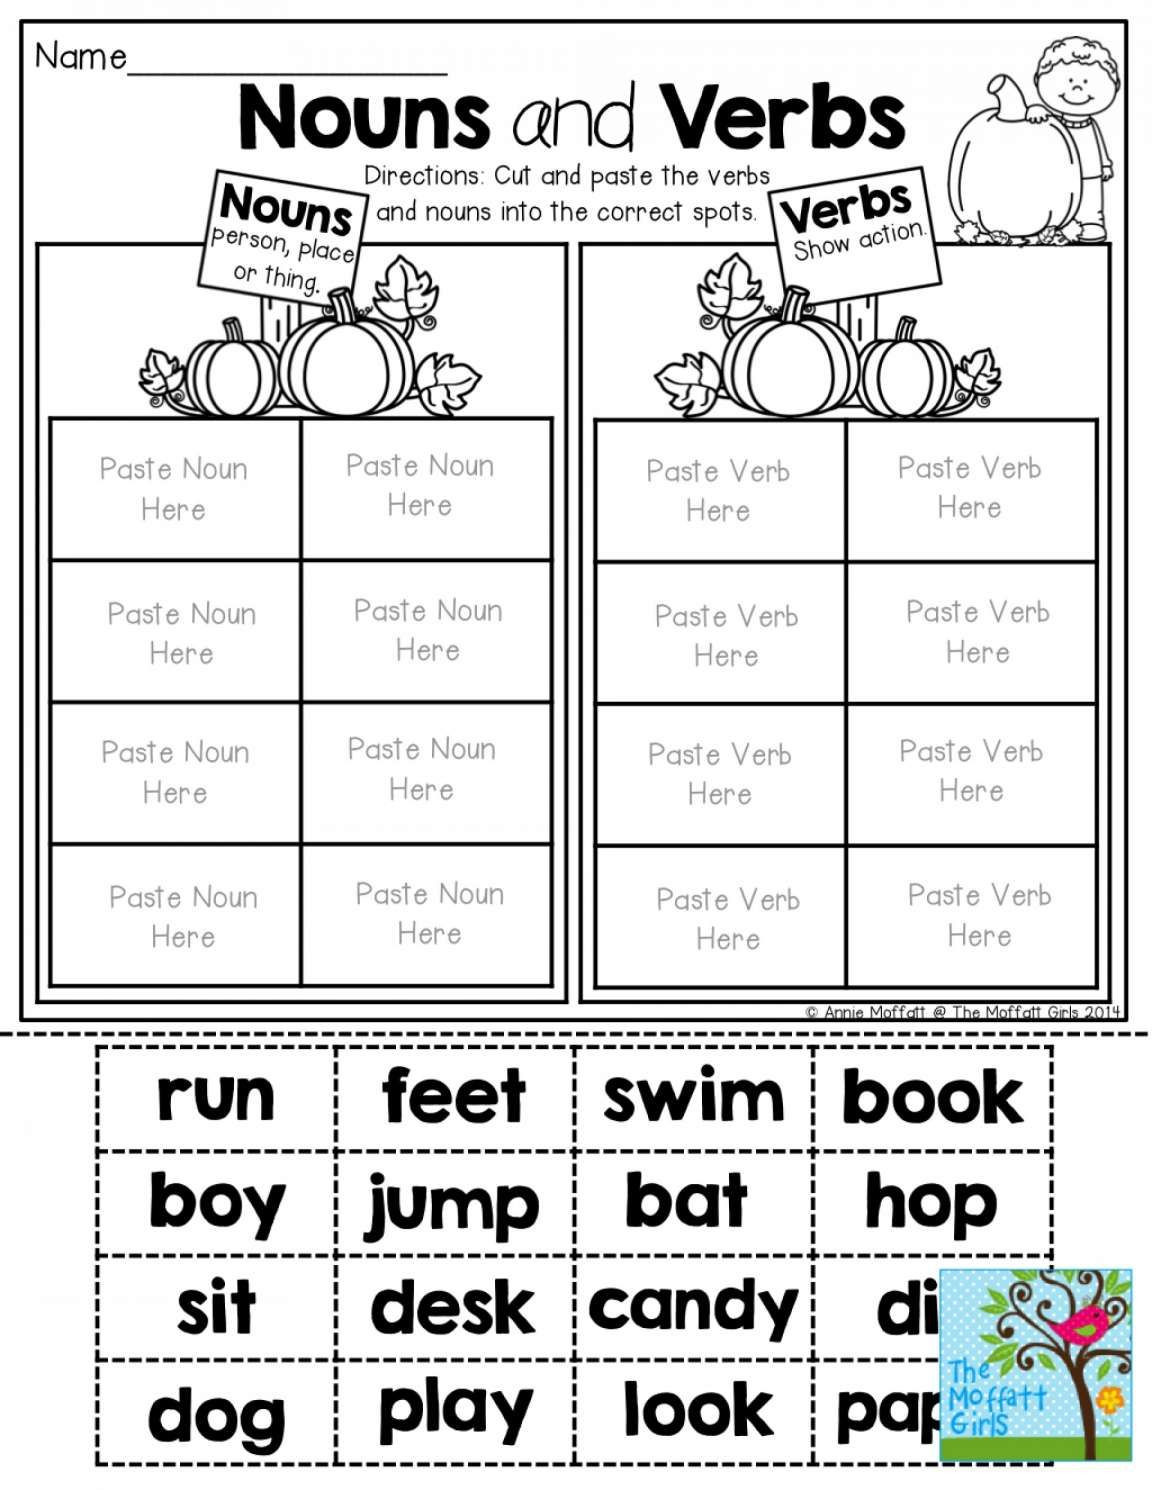 Verb Tense Worksheets 1st Grade Pin On English